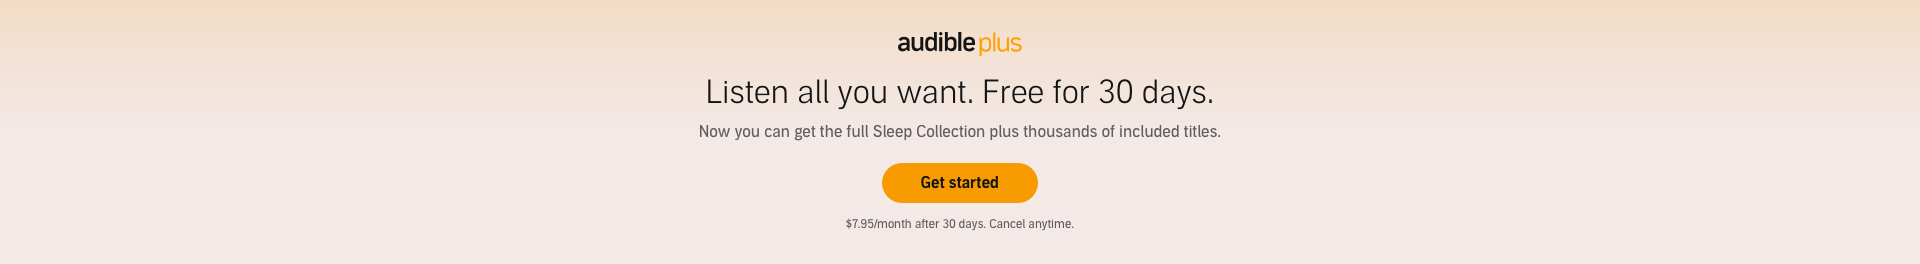 Audible Plus: Listen all you want. Free for 30 days. Get started now.